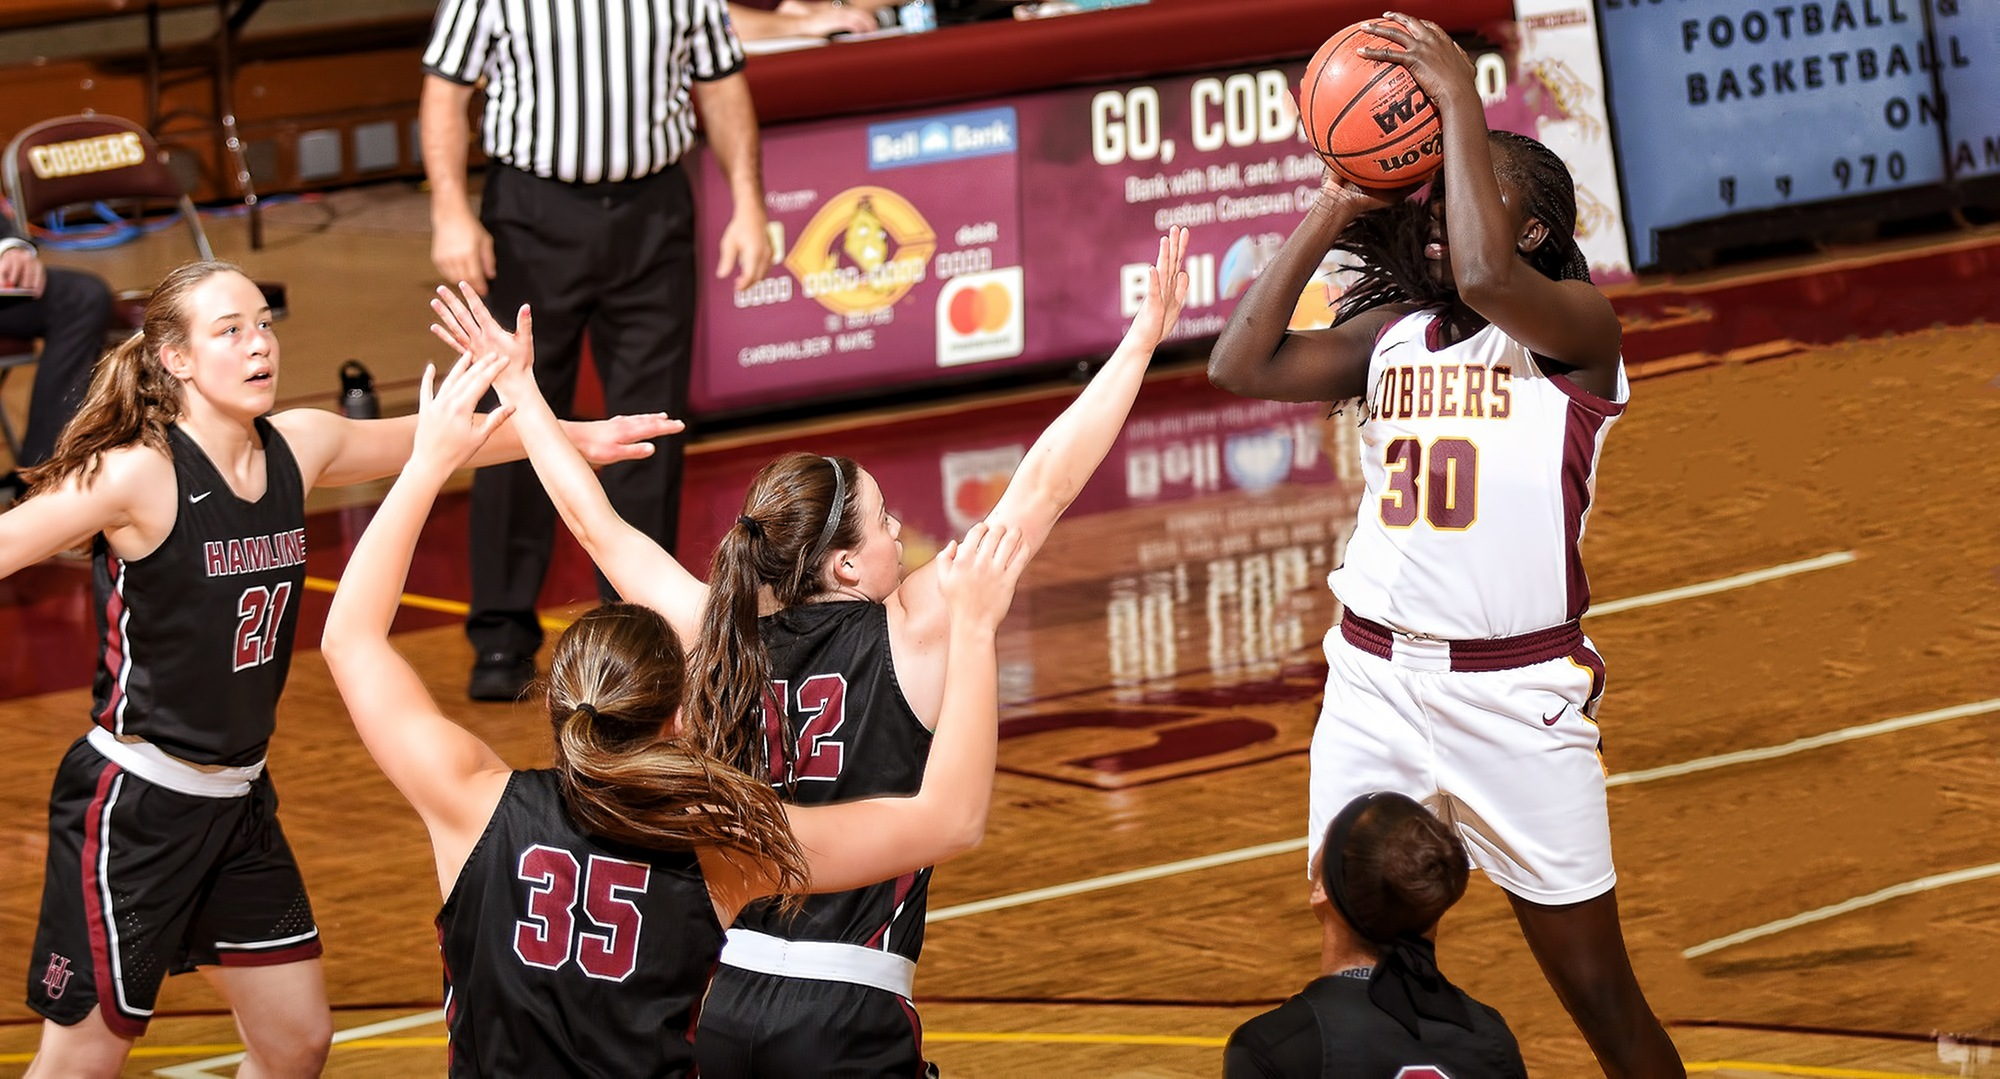 Sophomore Mary Sem goes up for two of her career-high 34 points among four Hamline defenders in the Cobbers' game with the Pipers.